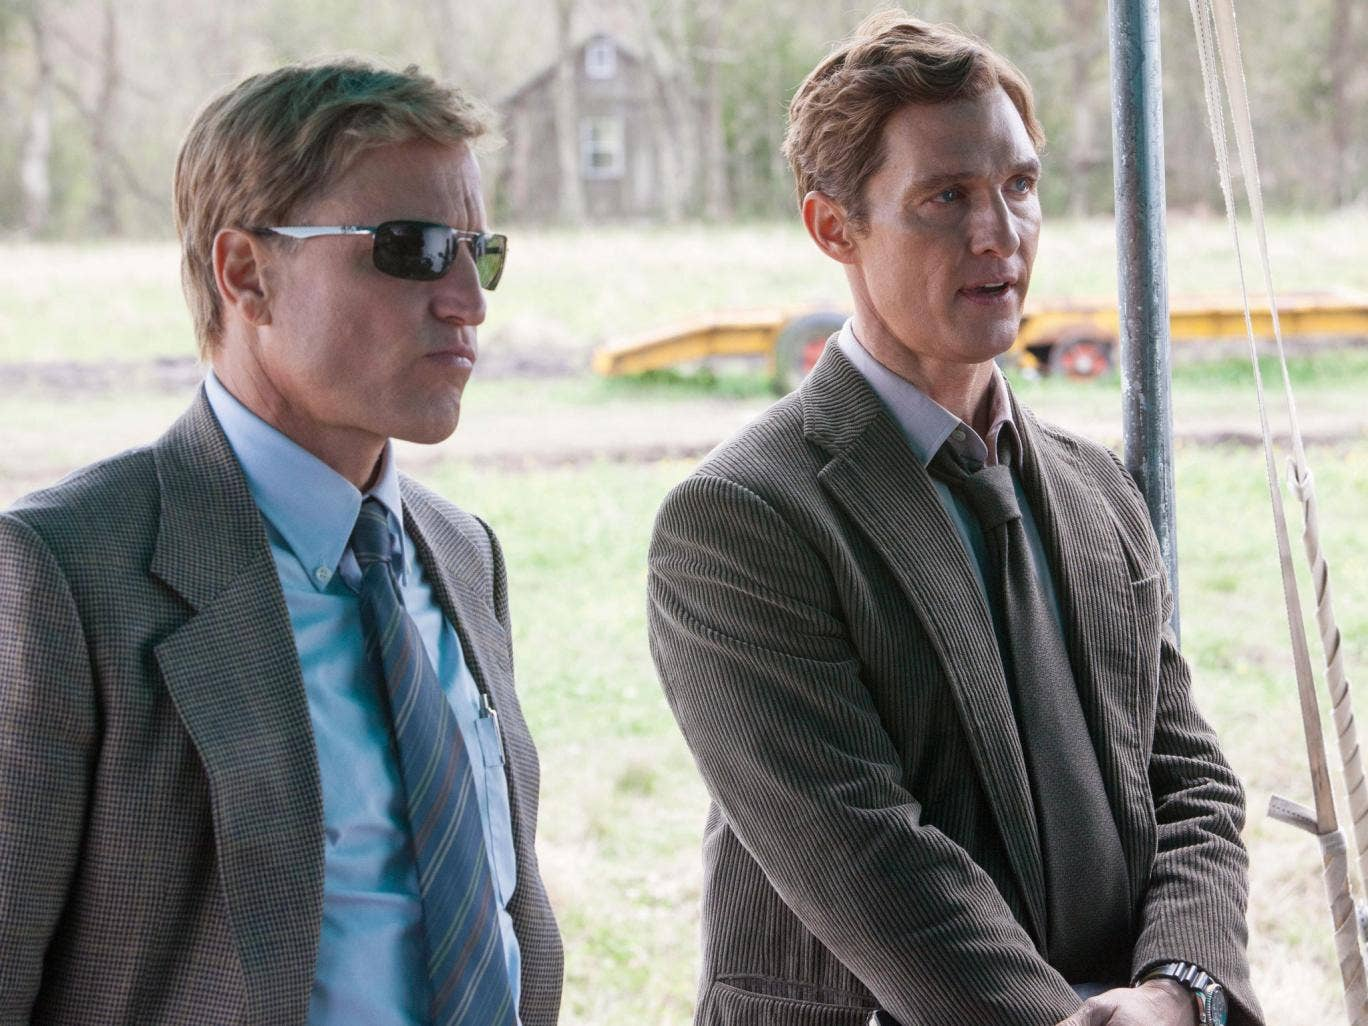 Woody Harrelson and Matthew McConaughey as Martin Hart and Rustin Cohle